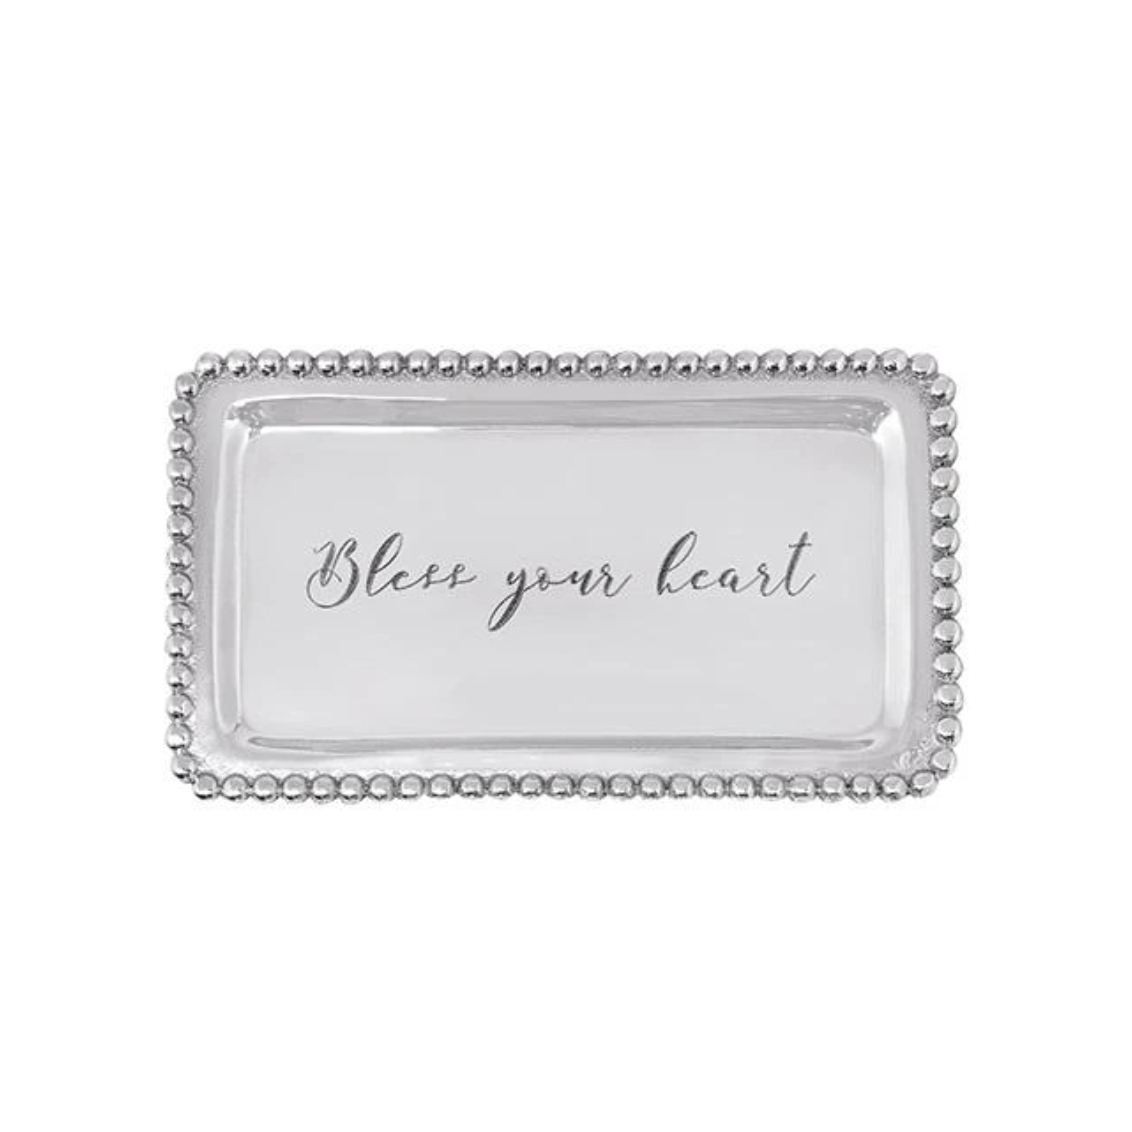 BLESS YOUR HEART Beaded Statement Tray-Sea Biscuit Del Mar